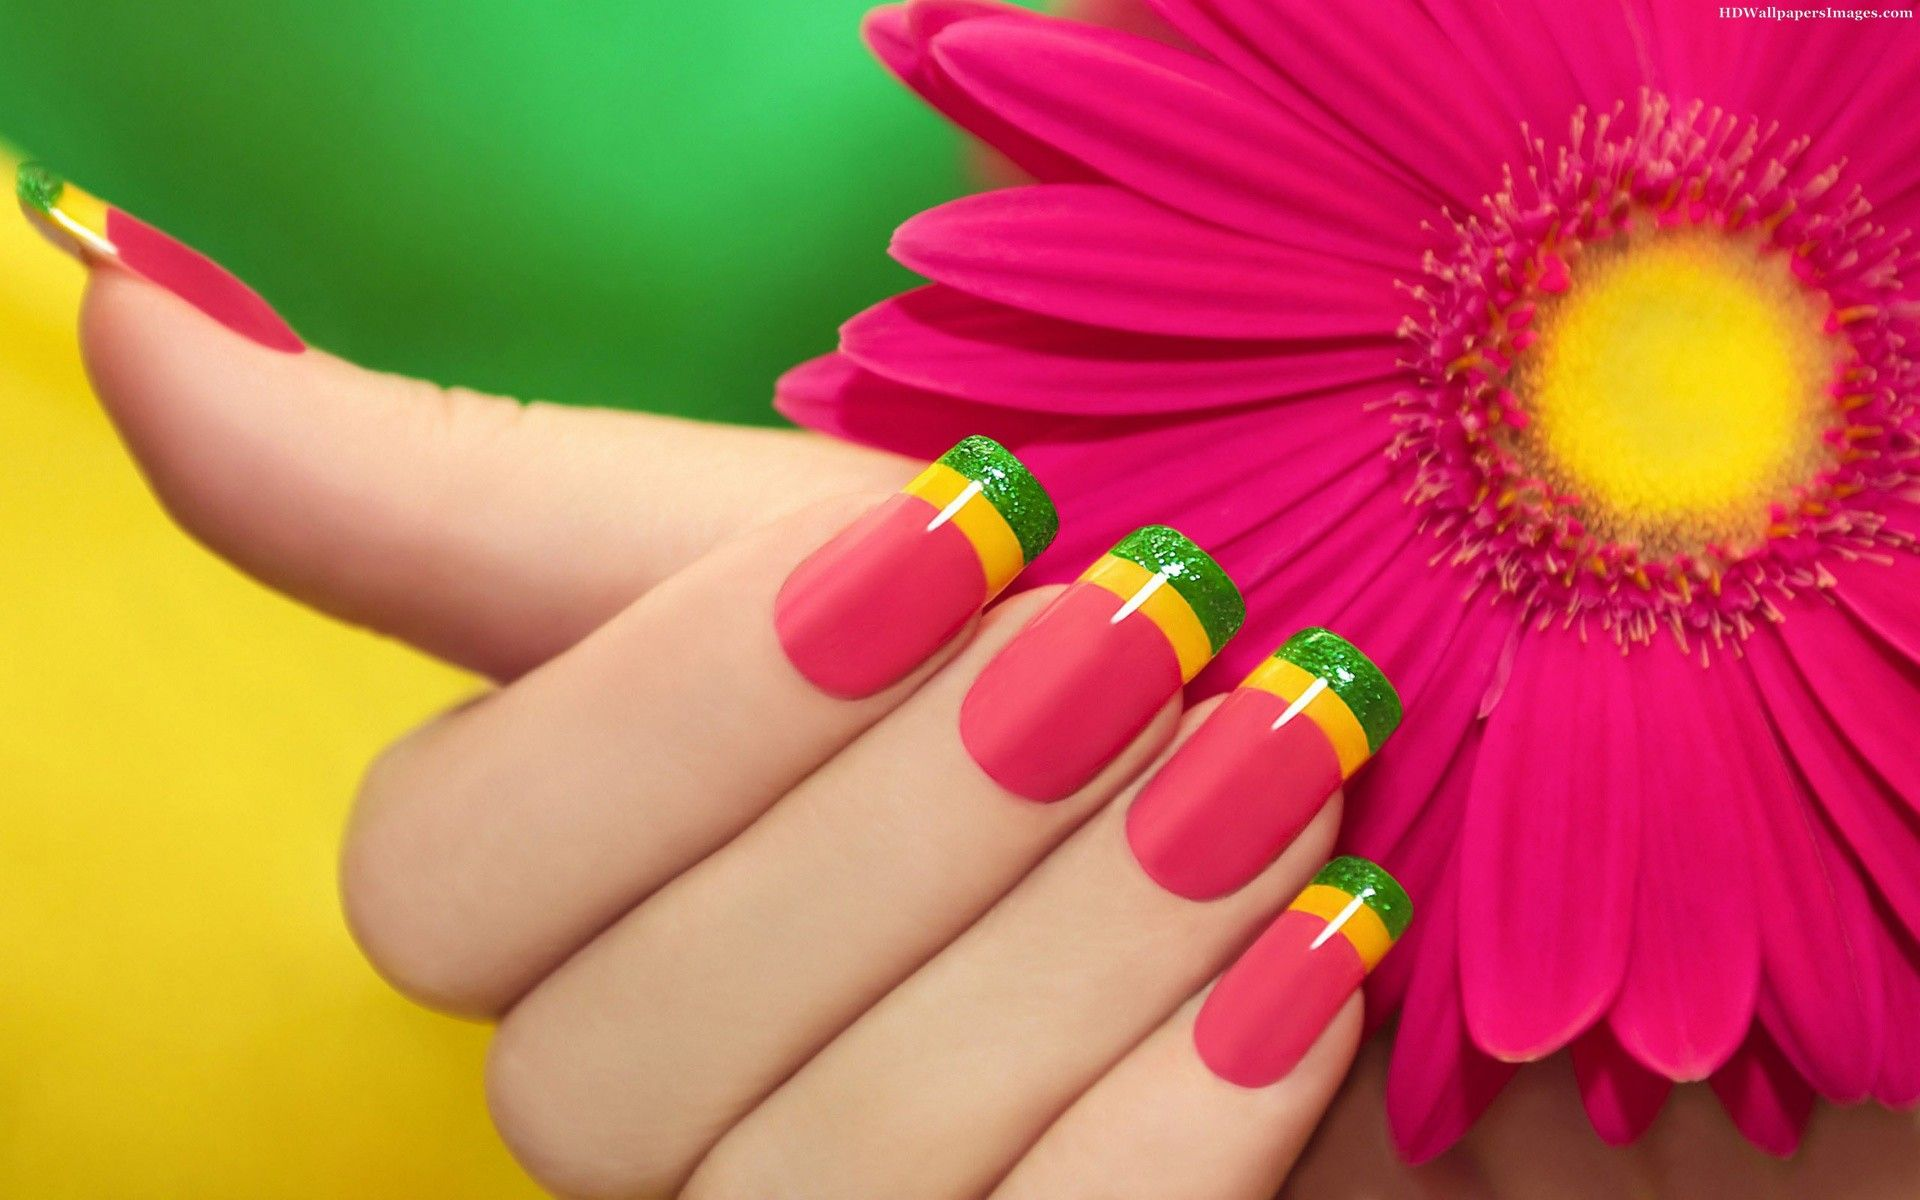 Erbera Flower With Hand Nail Polish Images Hd Wallpapers